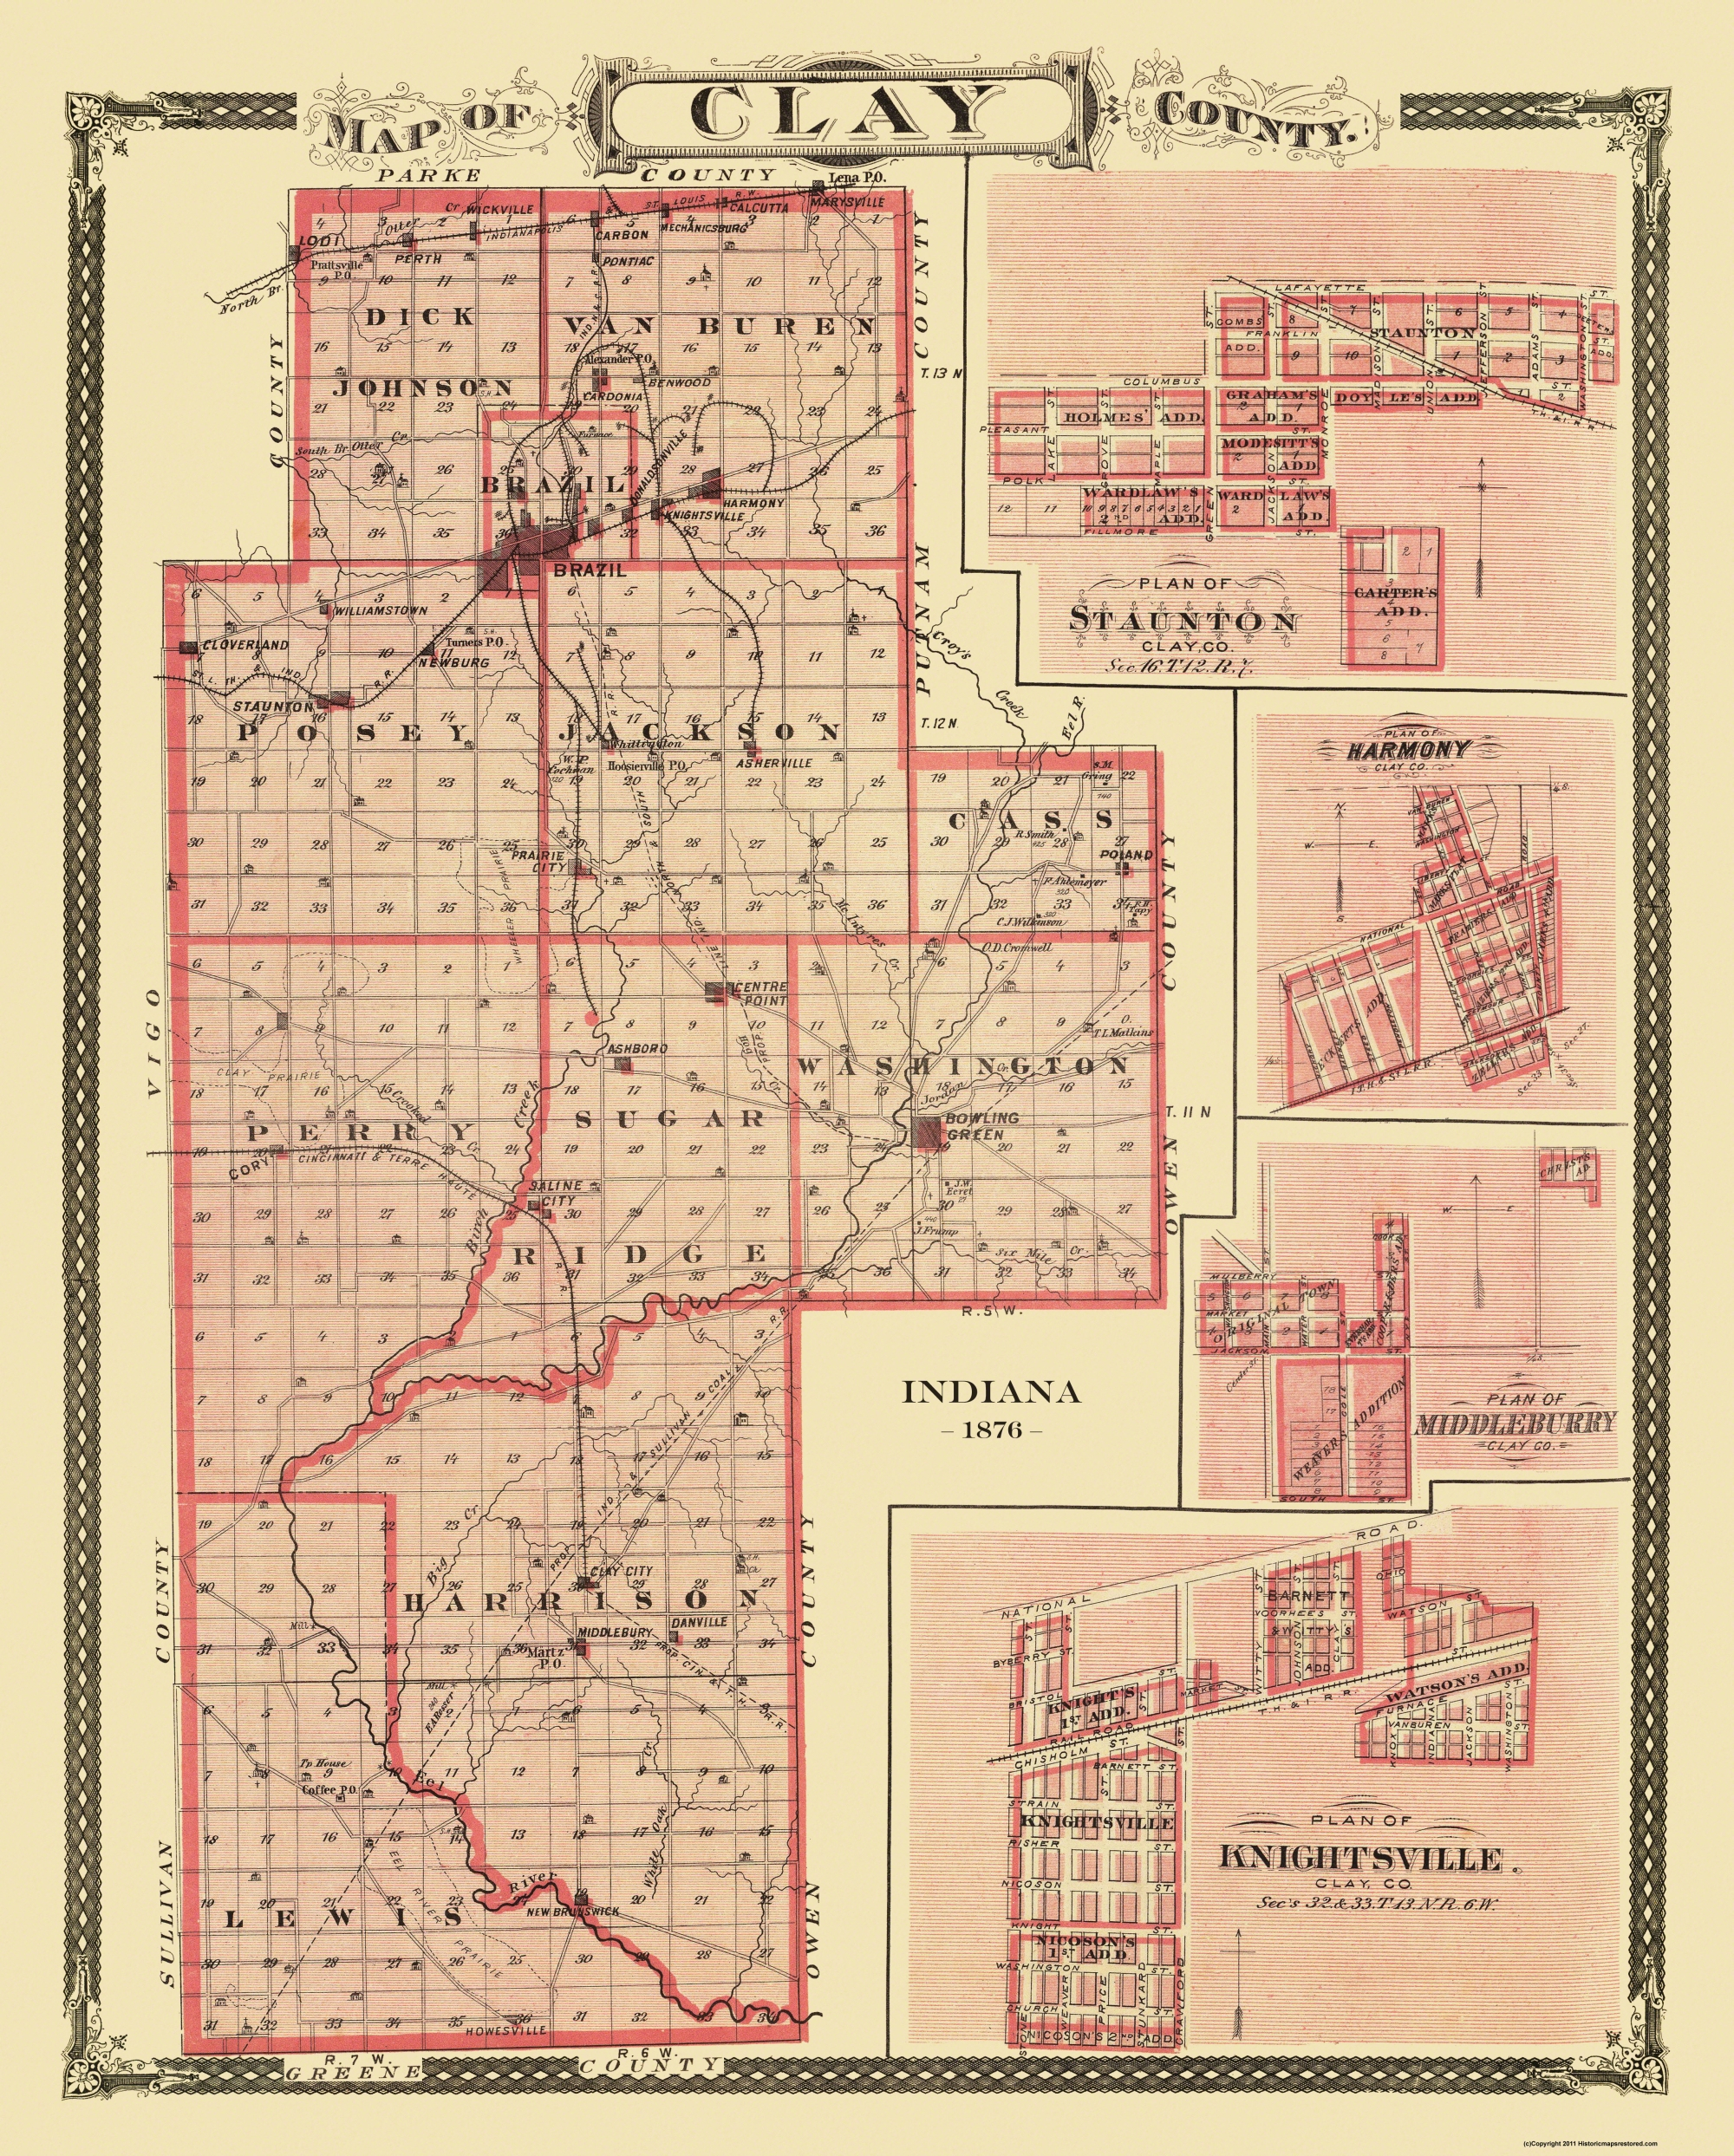 Indiana clay county harmony - Sites Specific To This Map Are The Town Plans Of Knightsville Middlebury Harmony And Staunton Indianapolis Sulliva Coa Lodi Indiana United States